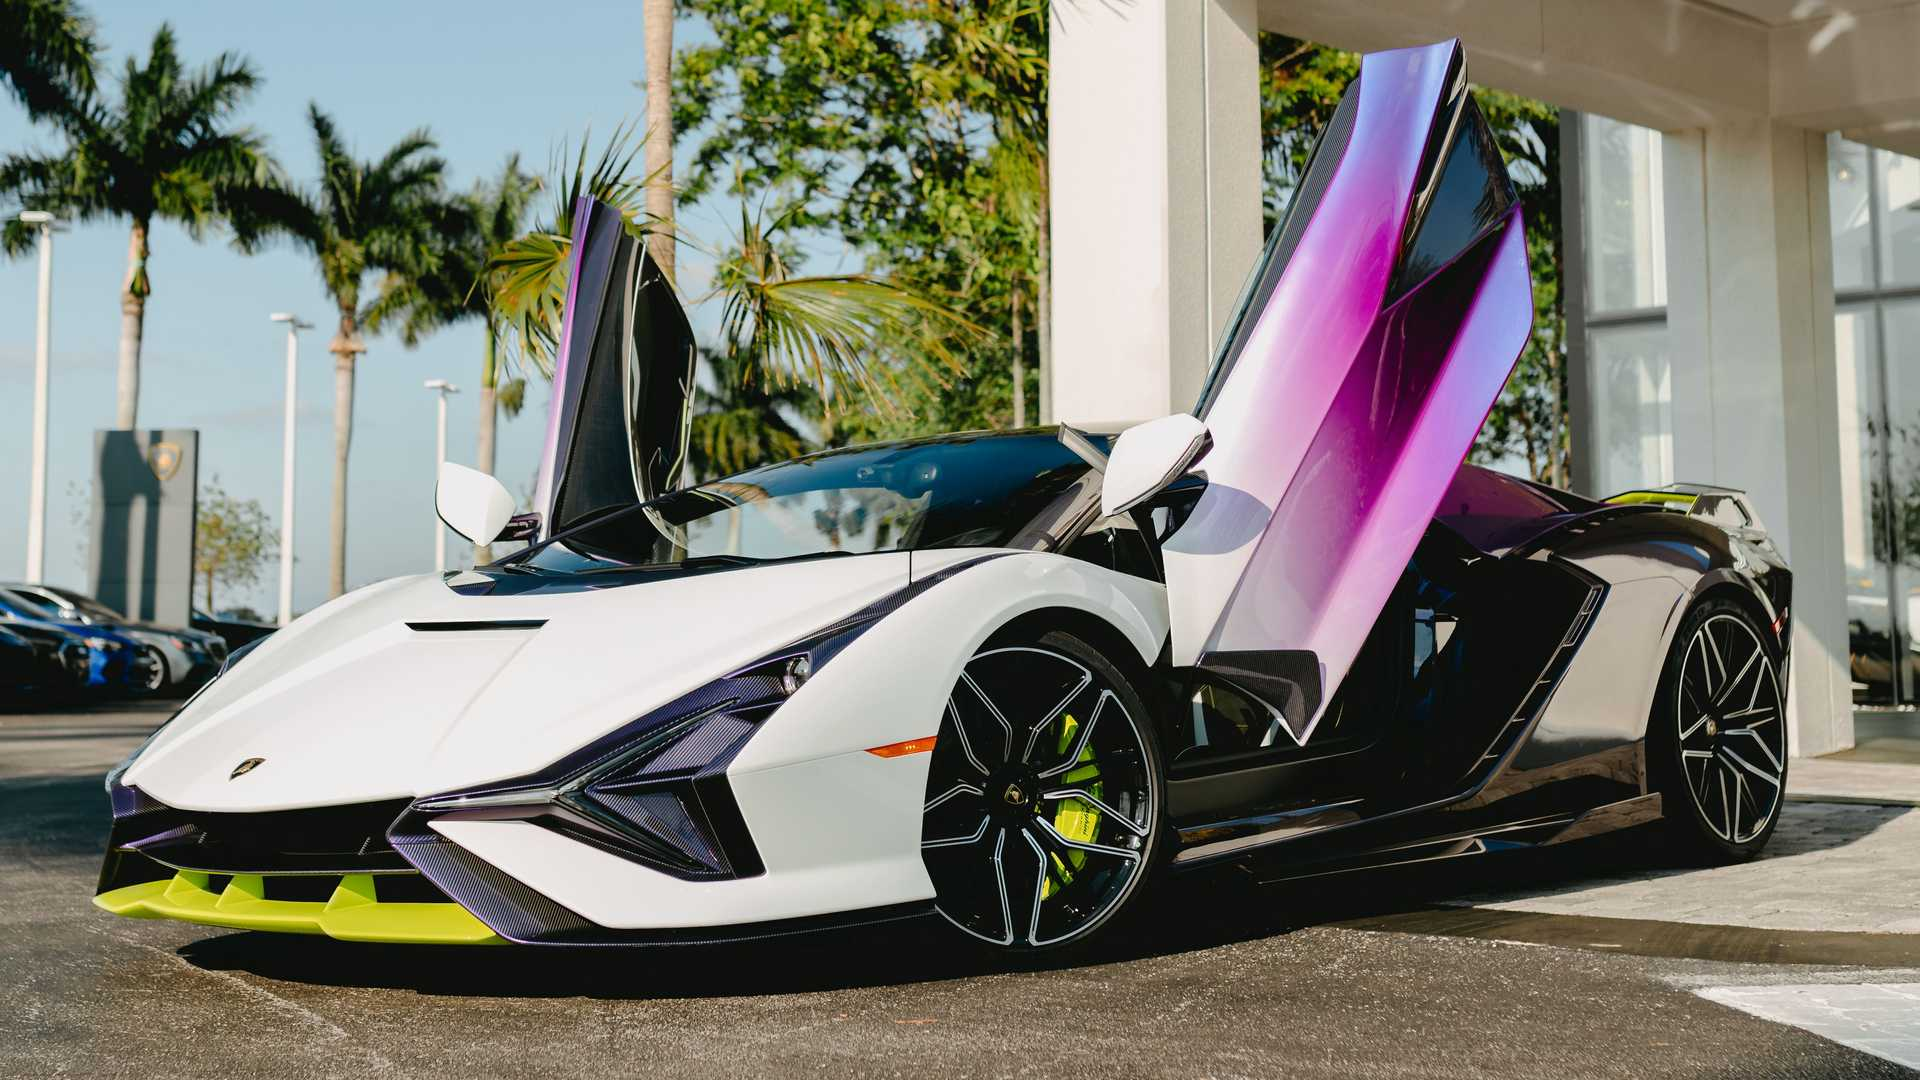 Lamborghini Sian In Purple, Green, And White Door Up With Pillar Photo By Juan Pablo Saenz